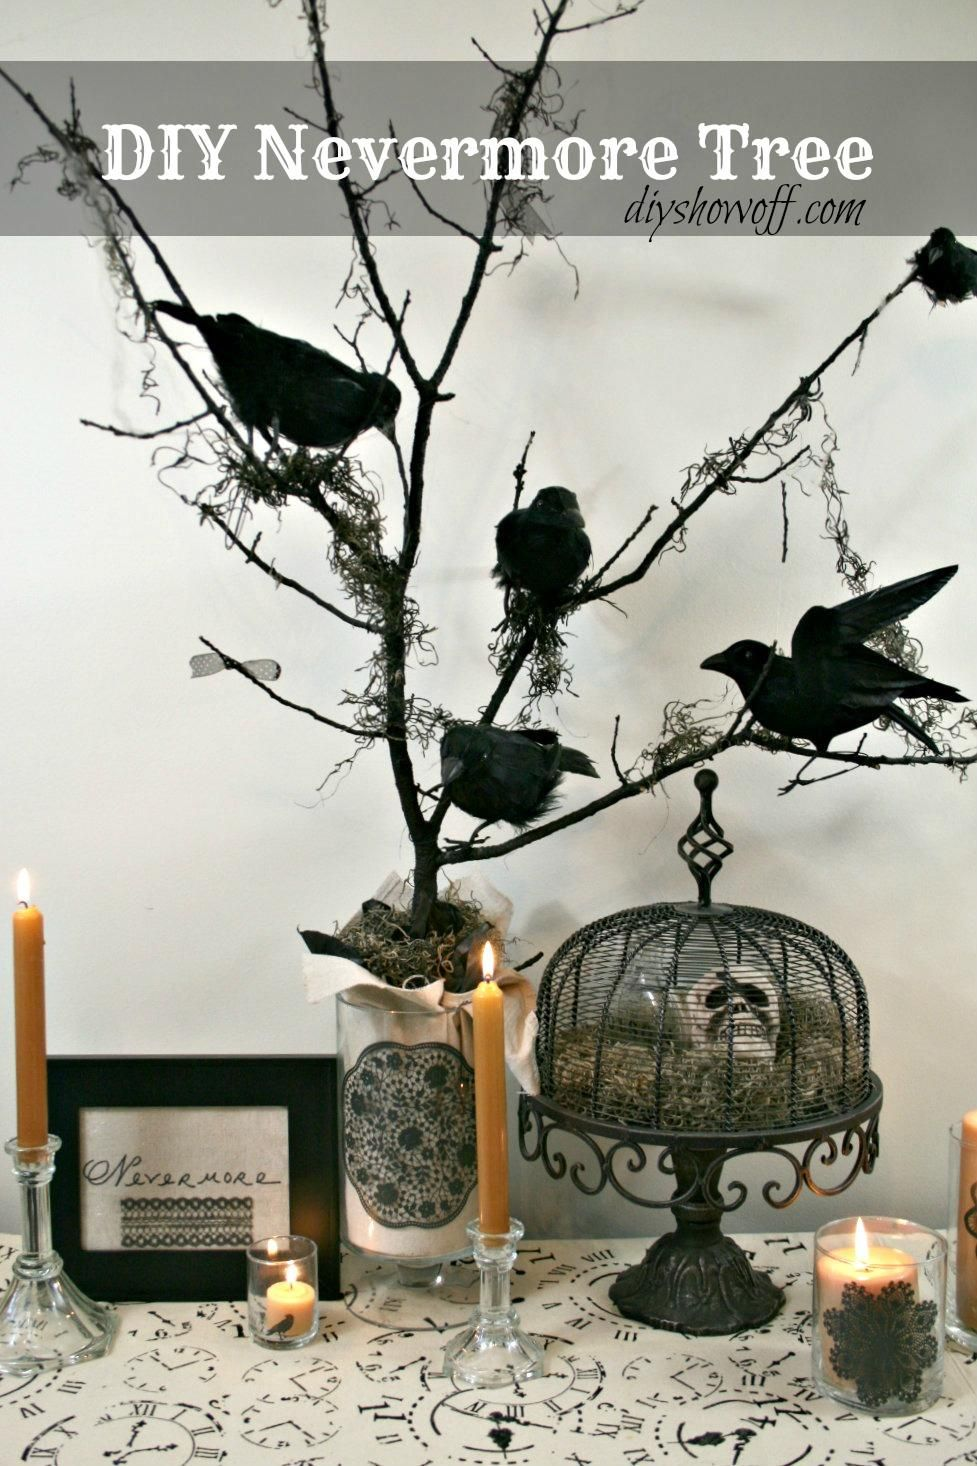 Halloween decorations  DIY Halloween Nevermore Tree decor - halloween decorations diy